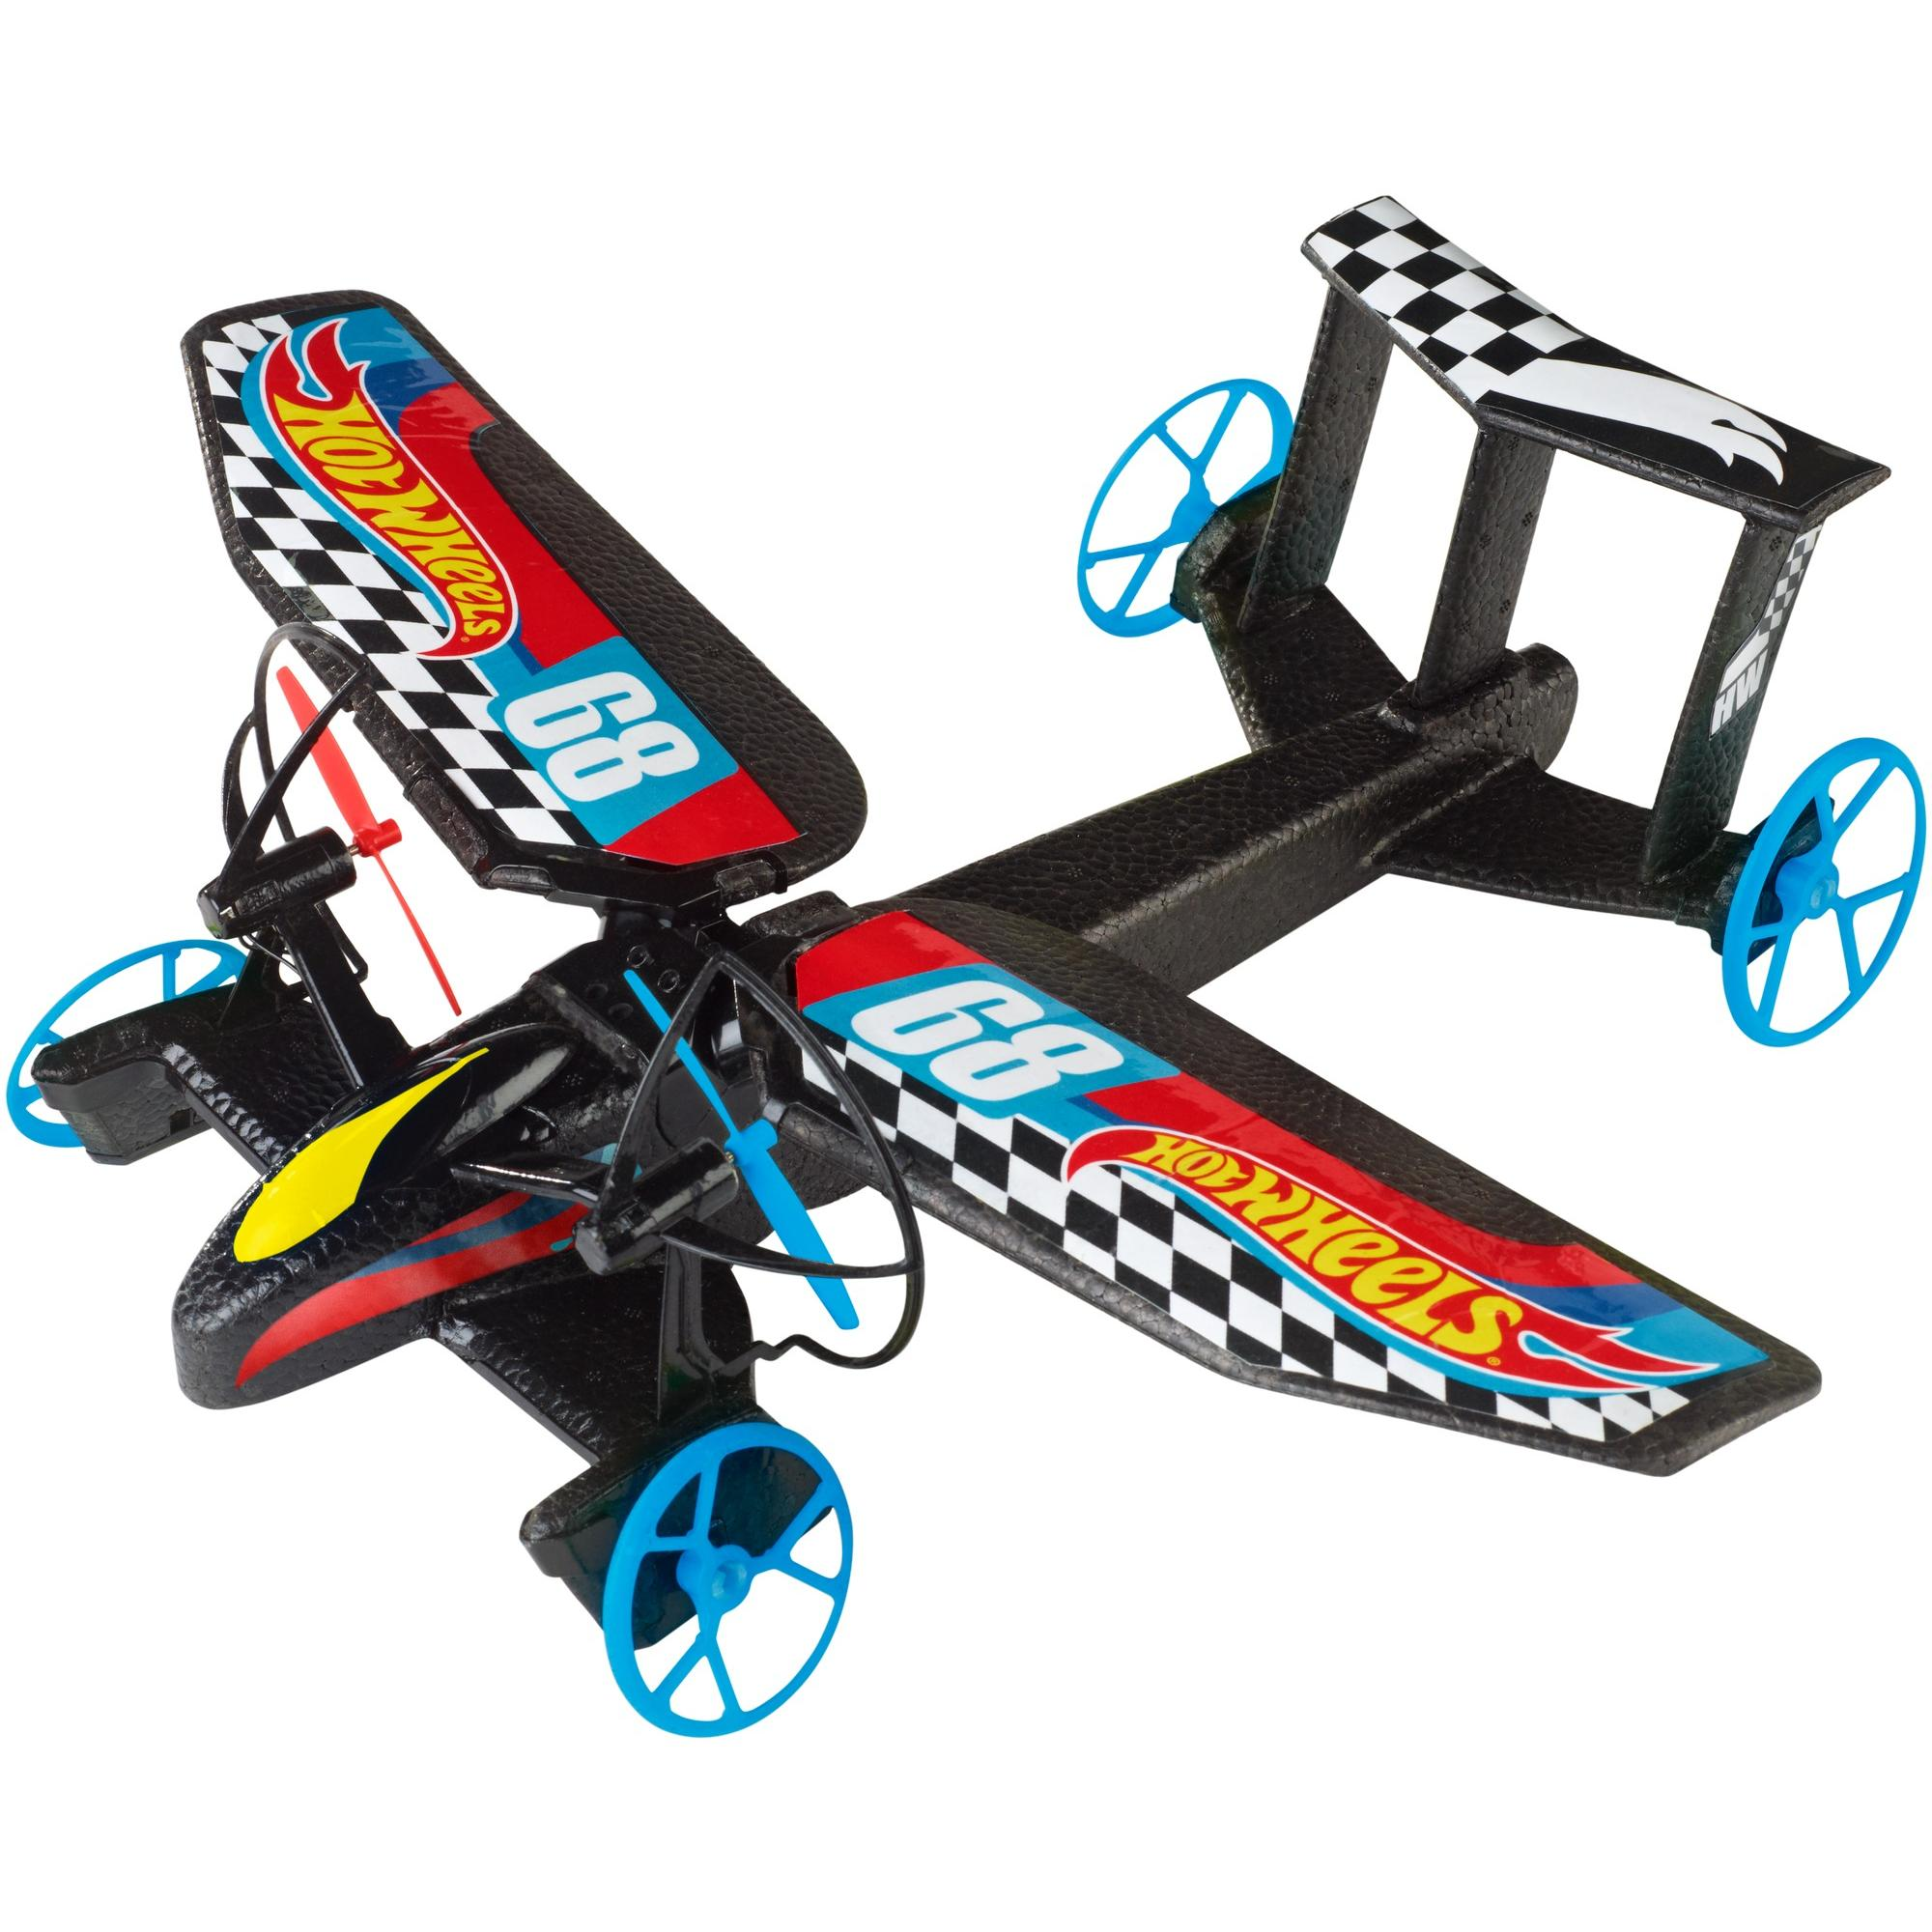 Hot Wheels Sky Shock RC (Race Design) by Mattel